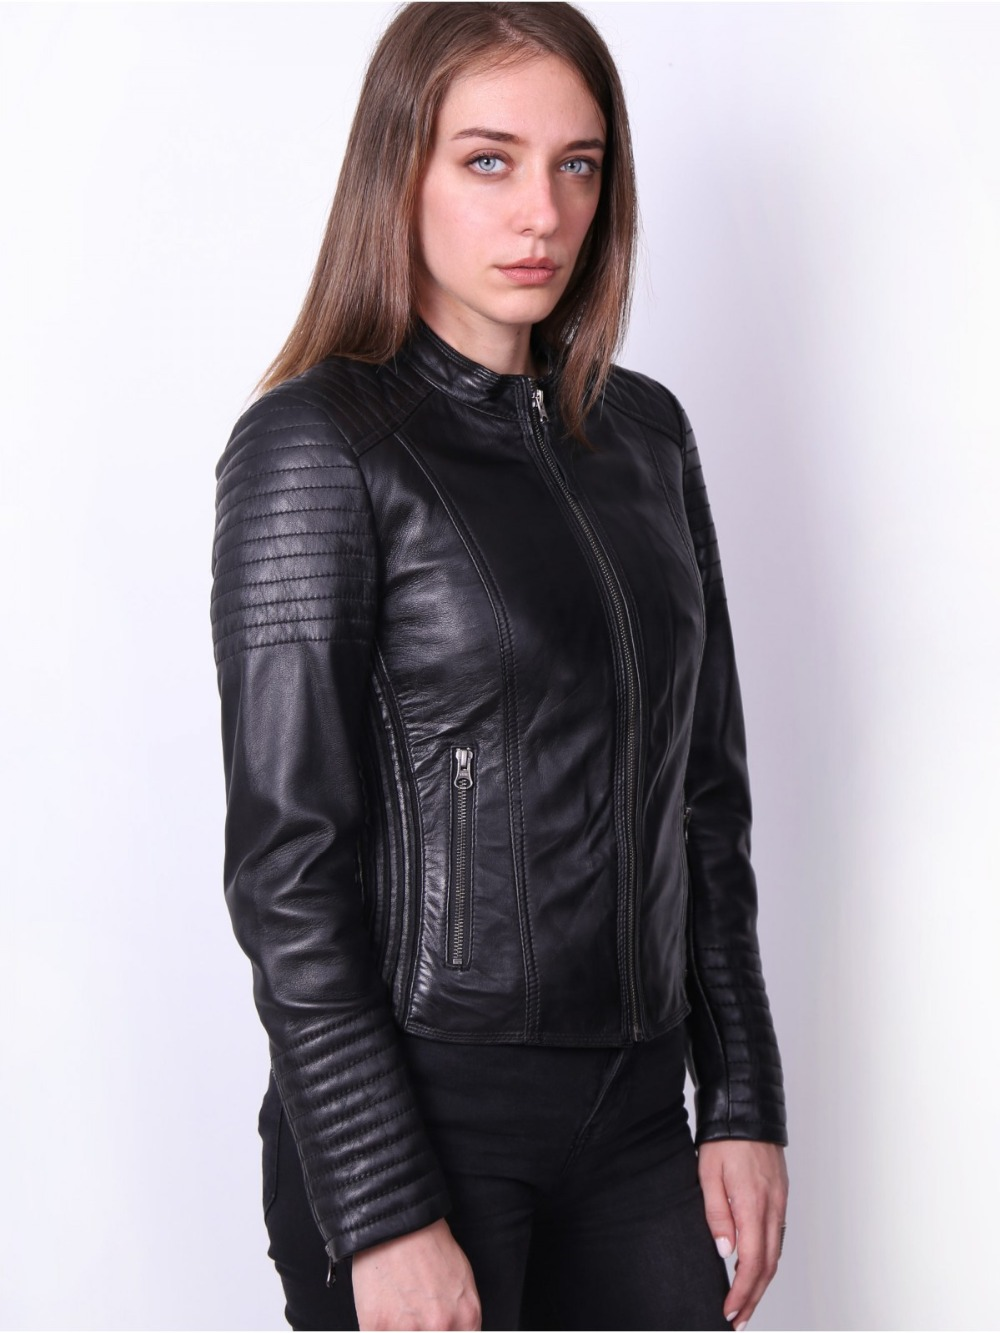 VAINAS European Brand  Women Genuine leather jacket for women Real sheep leather jacket Motorcycle jackets Biker jackets Queen